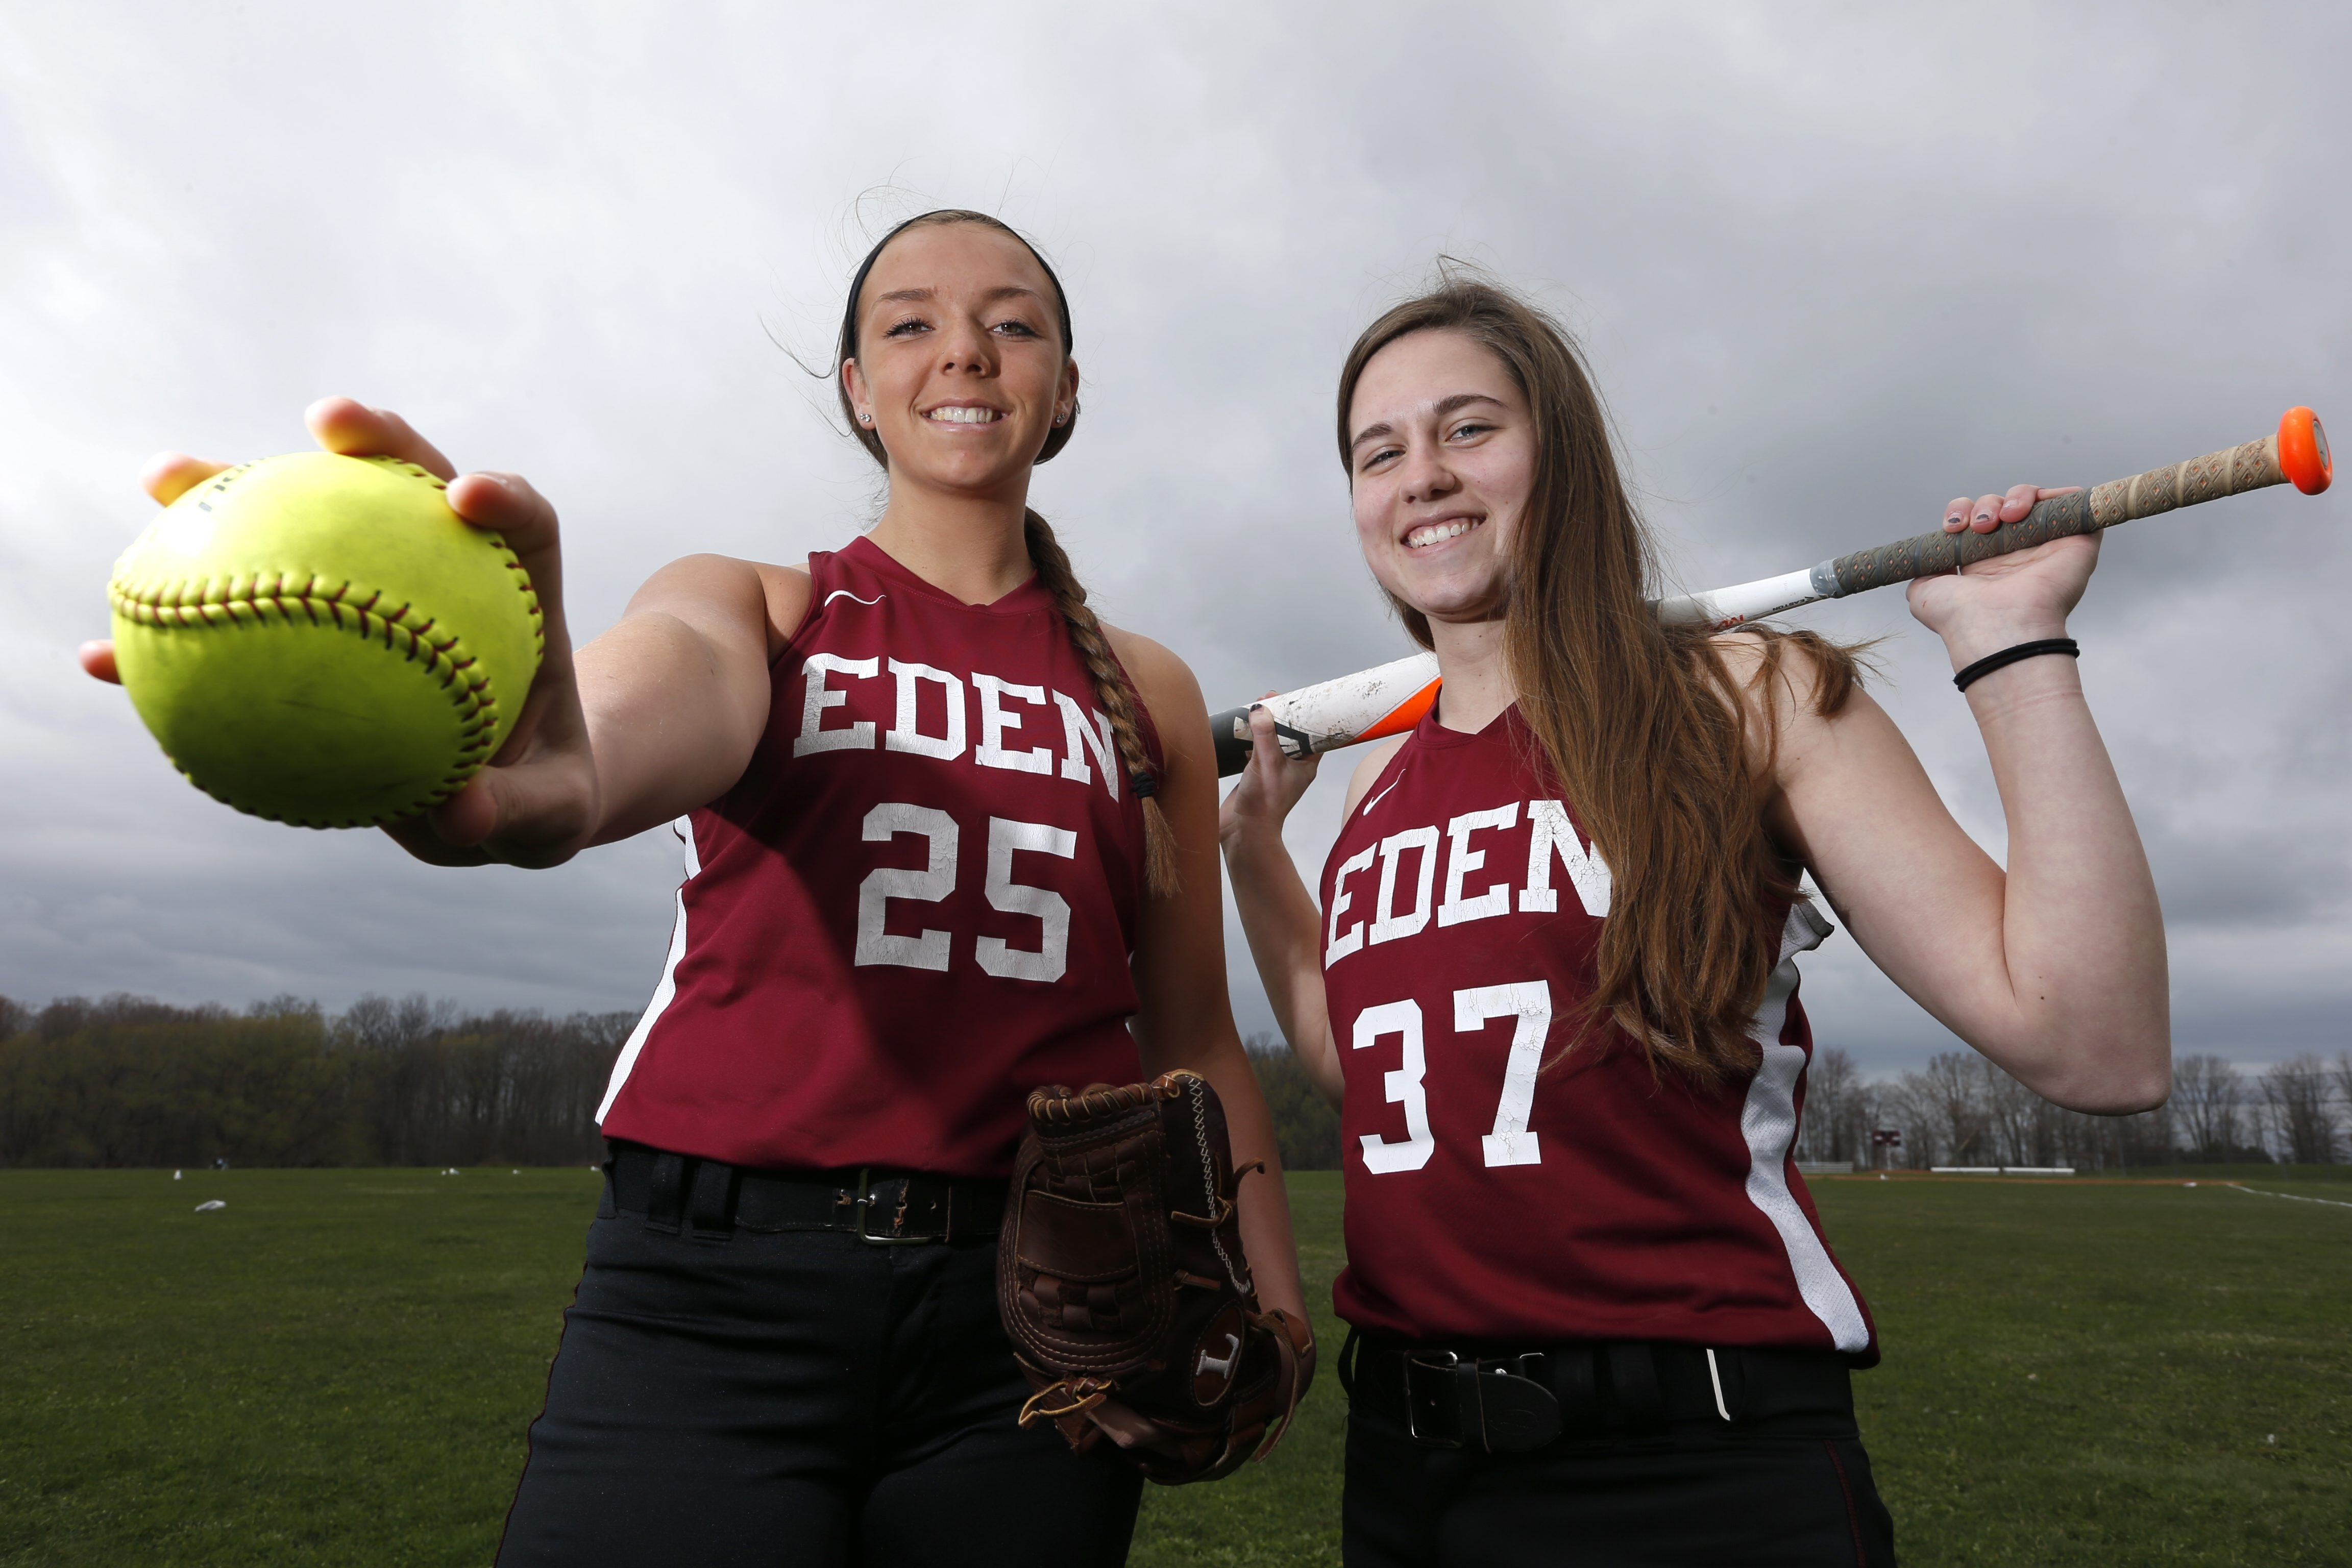 Carly Nasca and Jill Murray helped lead the Eden softball team to the Class B state championship in 2014.